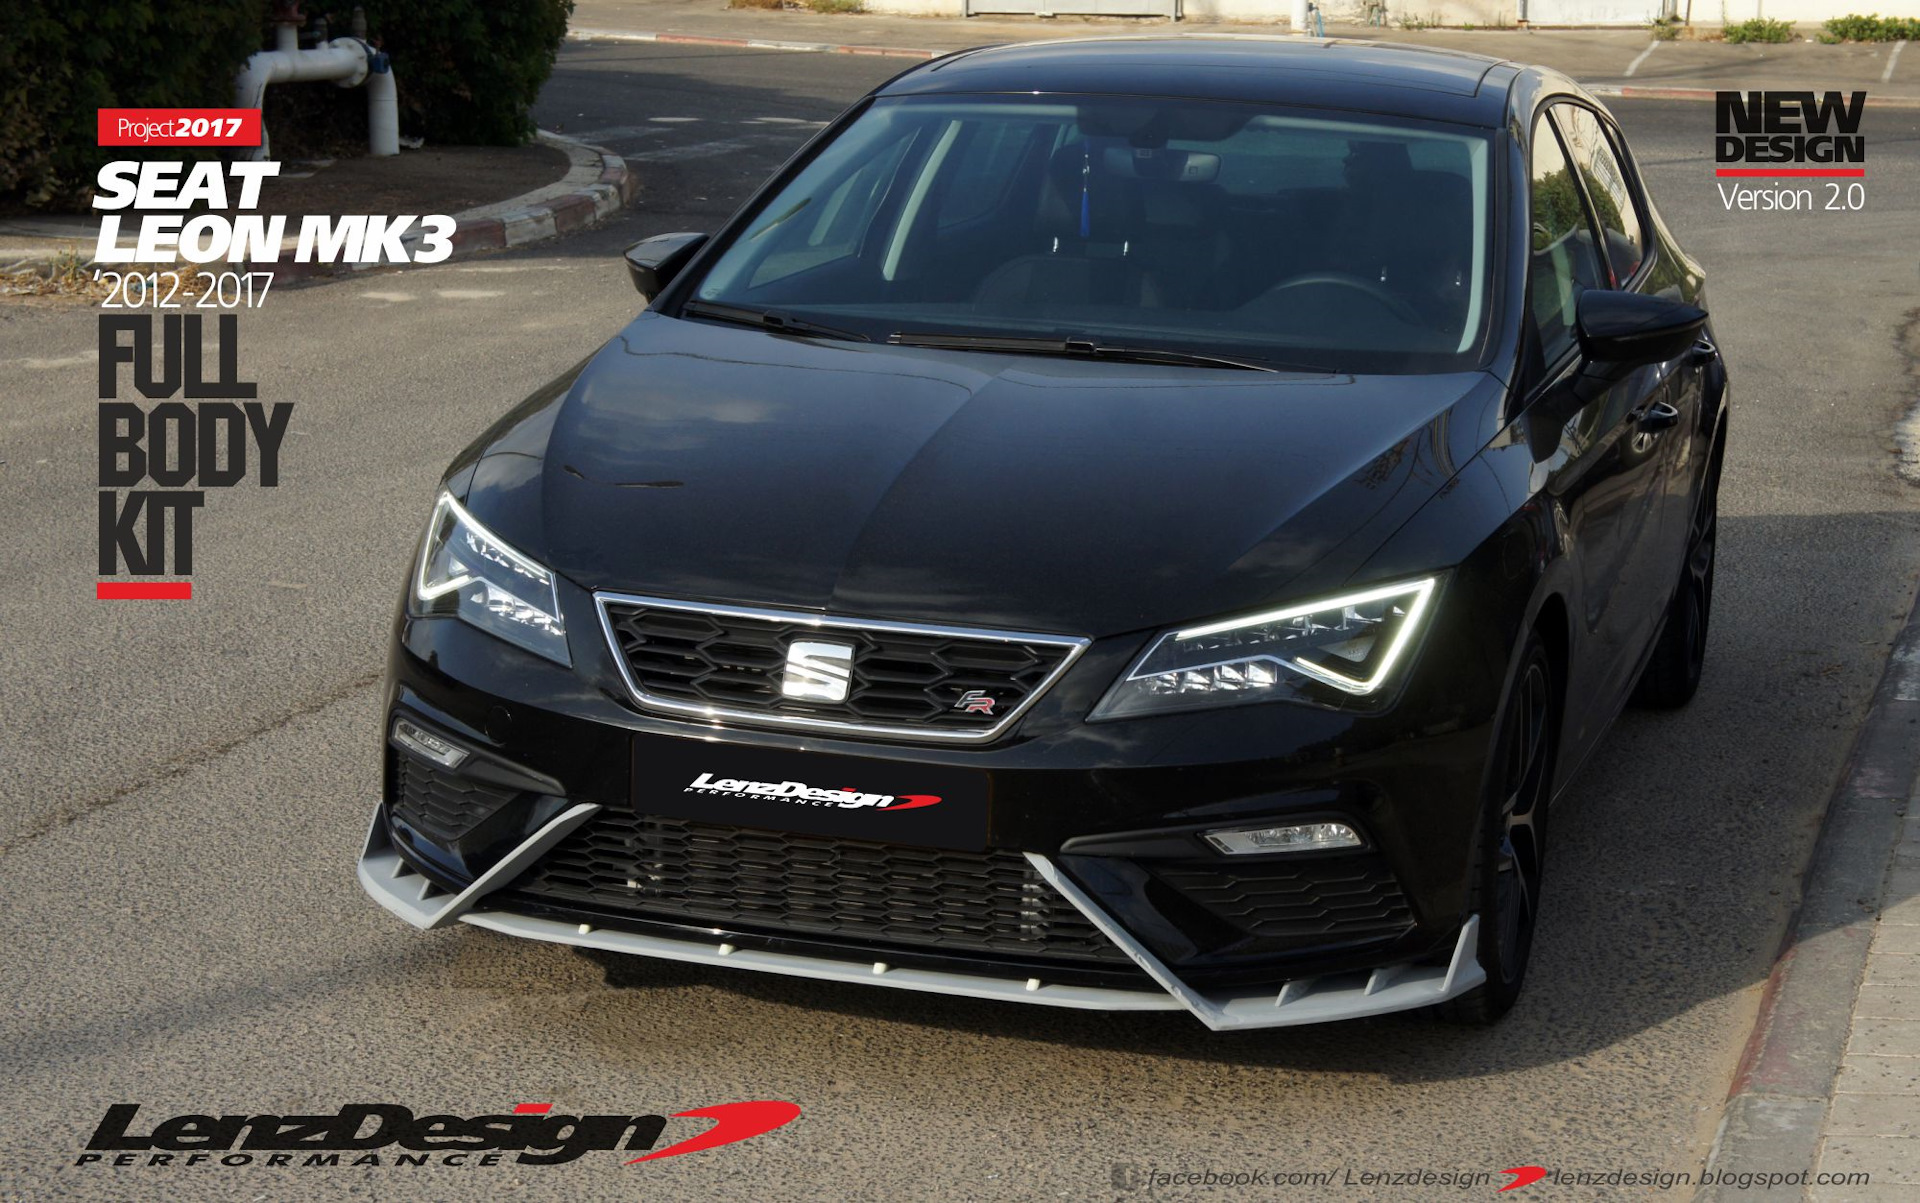 seat leon mk3 5f tuning body kit lenzdesign performance new design version 2 0 lenzdesign. Black Bedroom Furniture Sets. Home Design Ideas